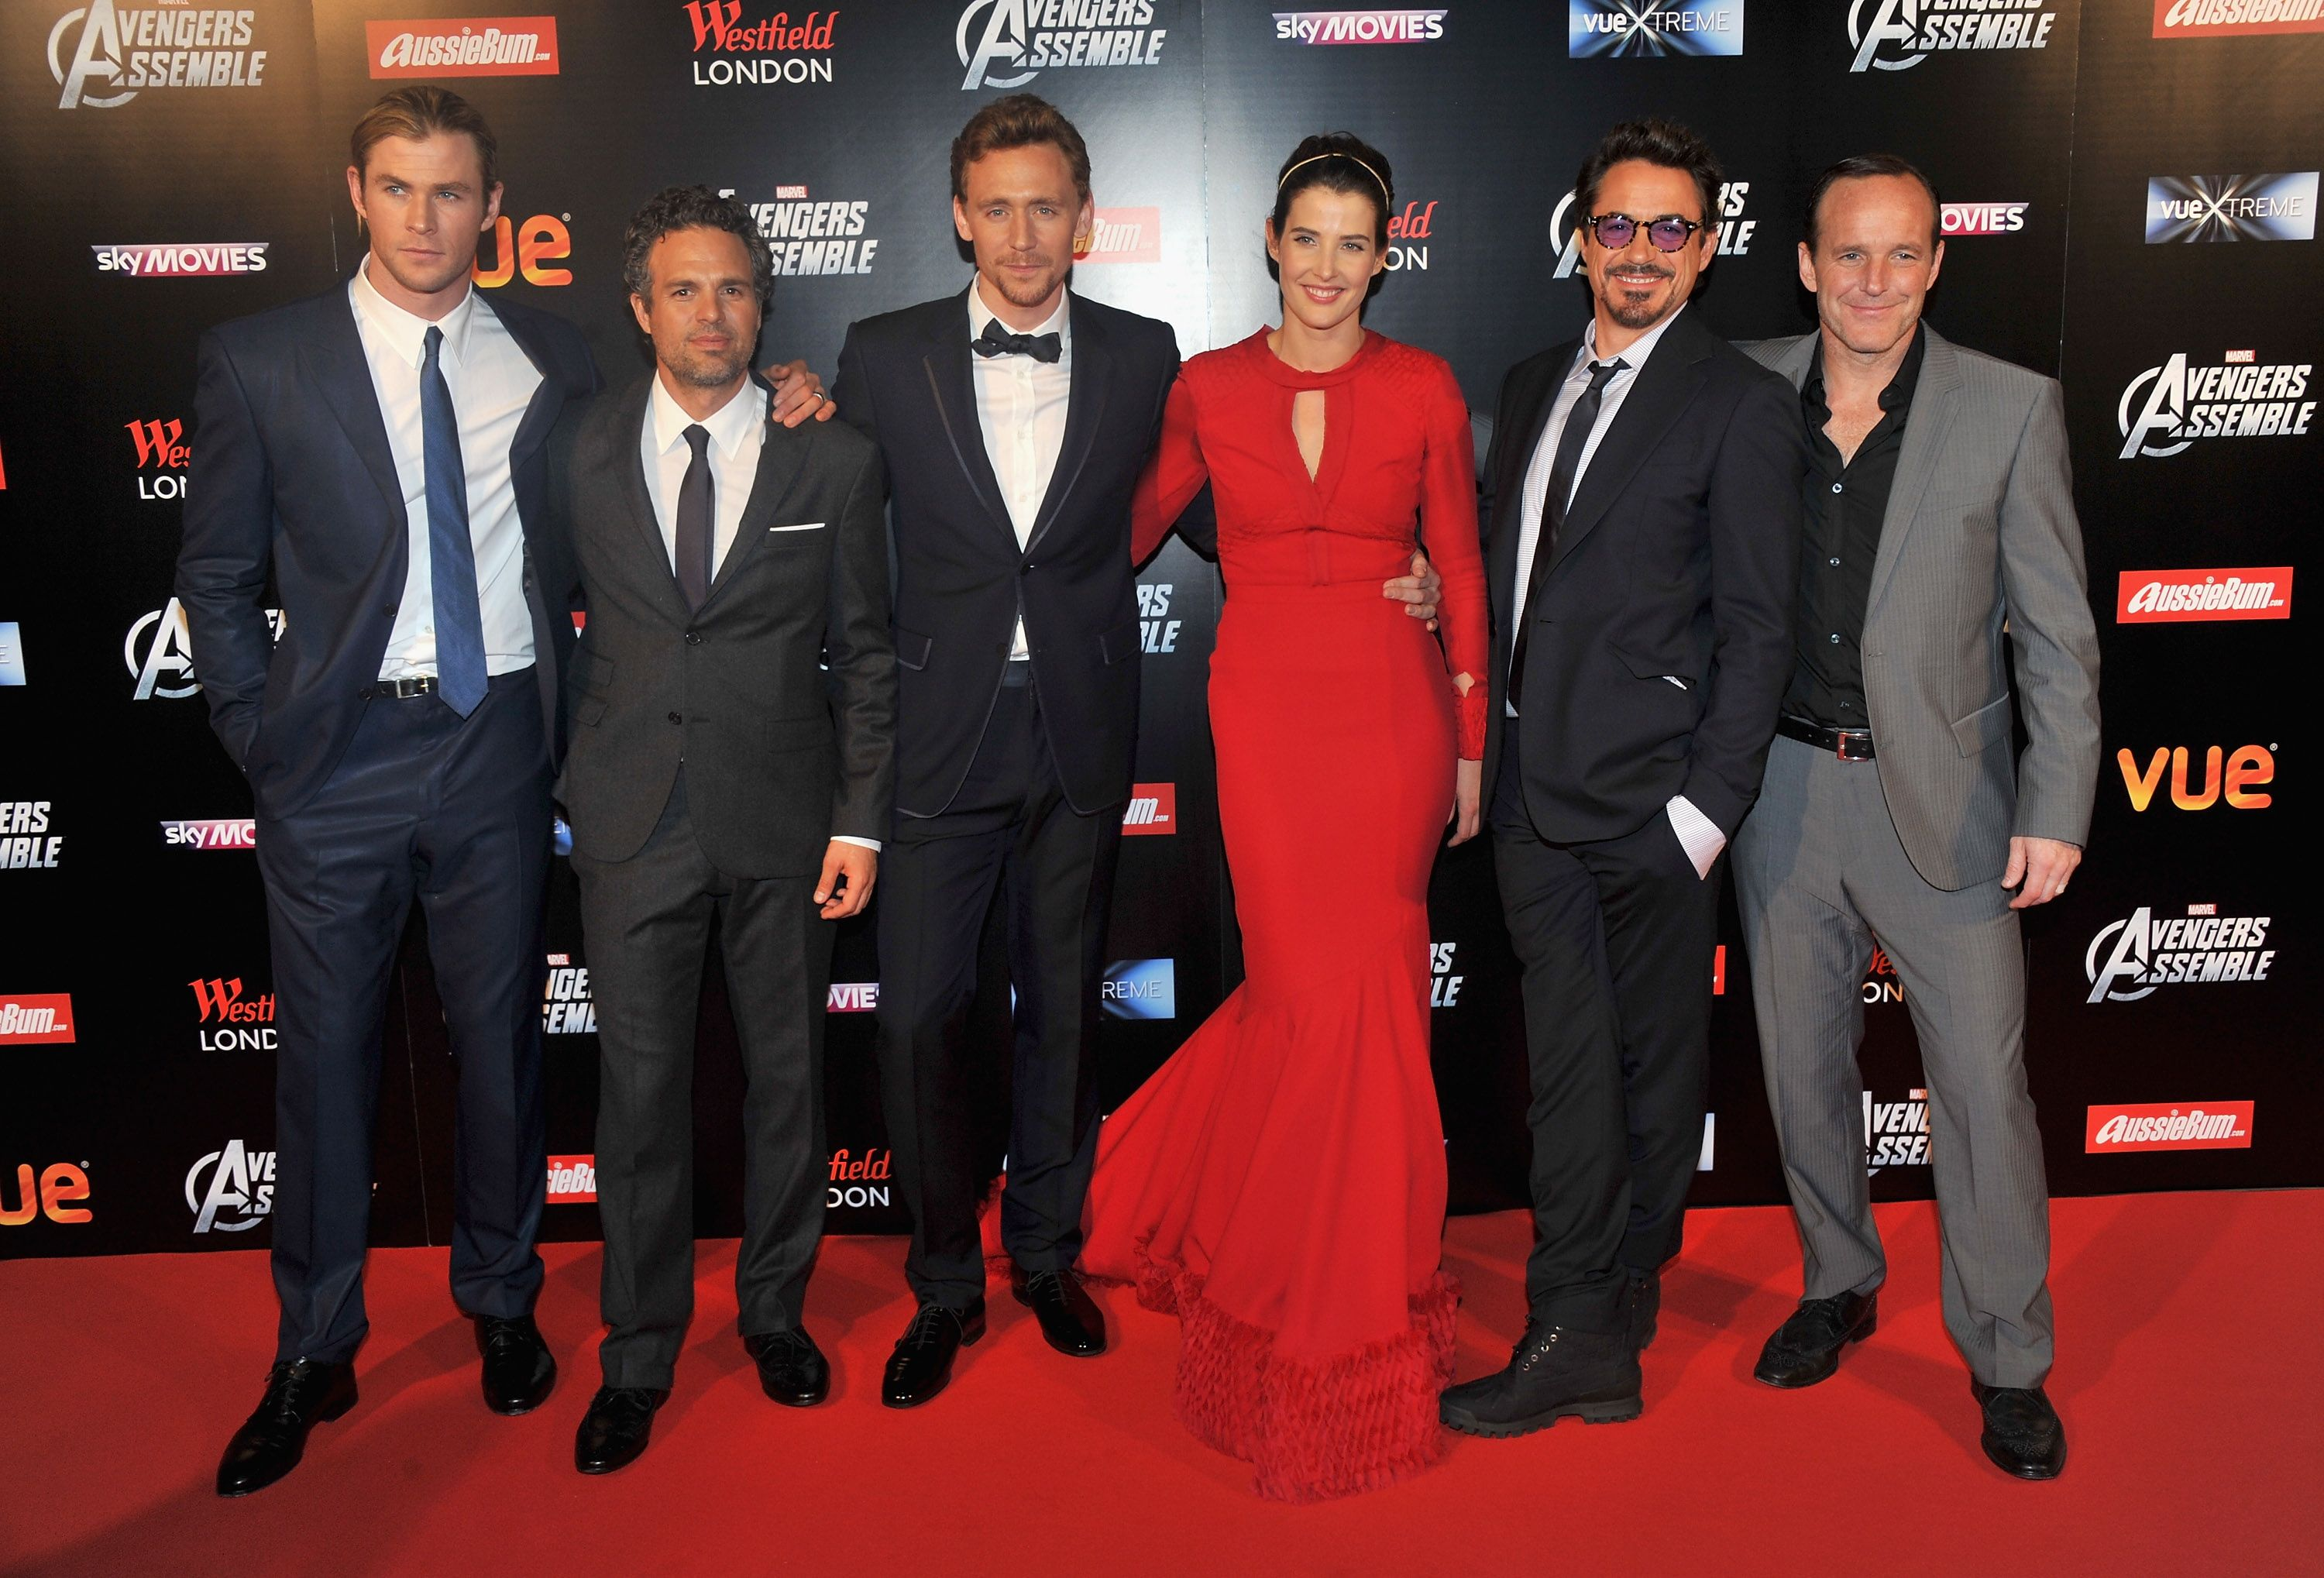 Gorgeous Photo Of The Avengers Cast The Fallen